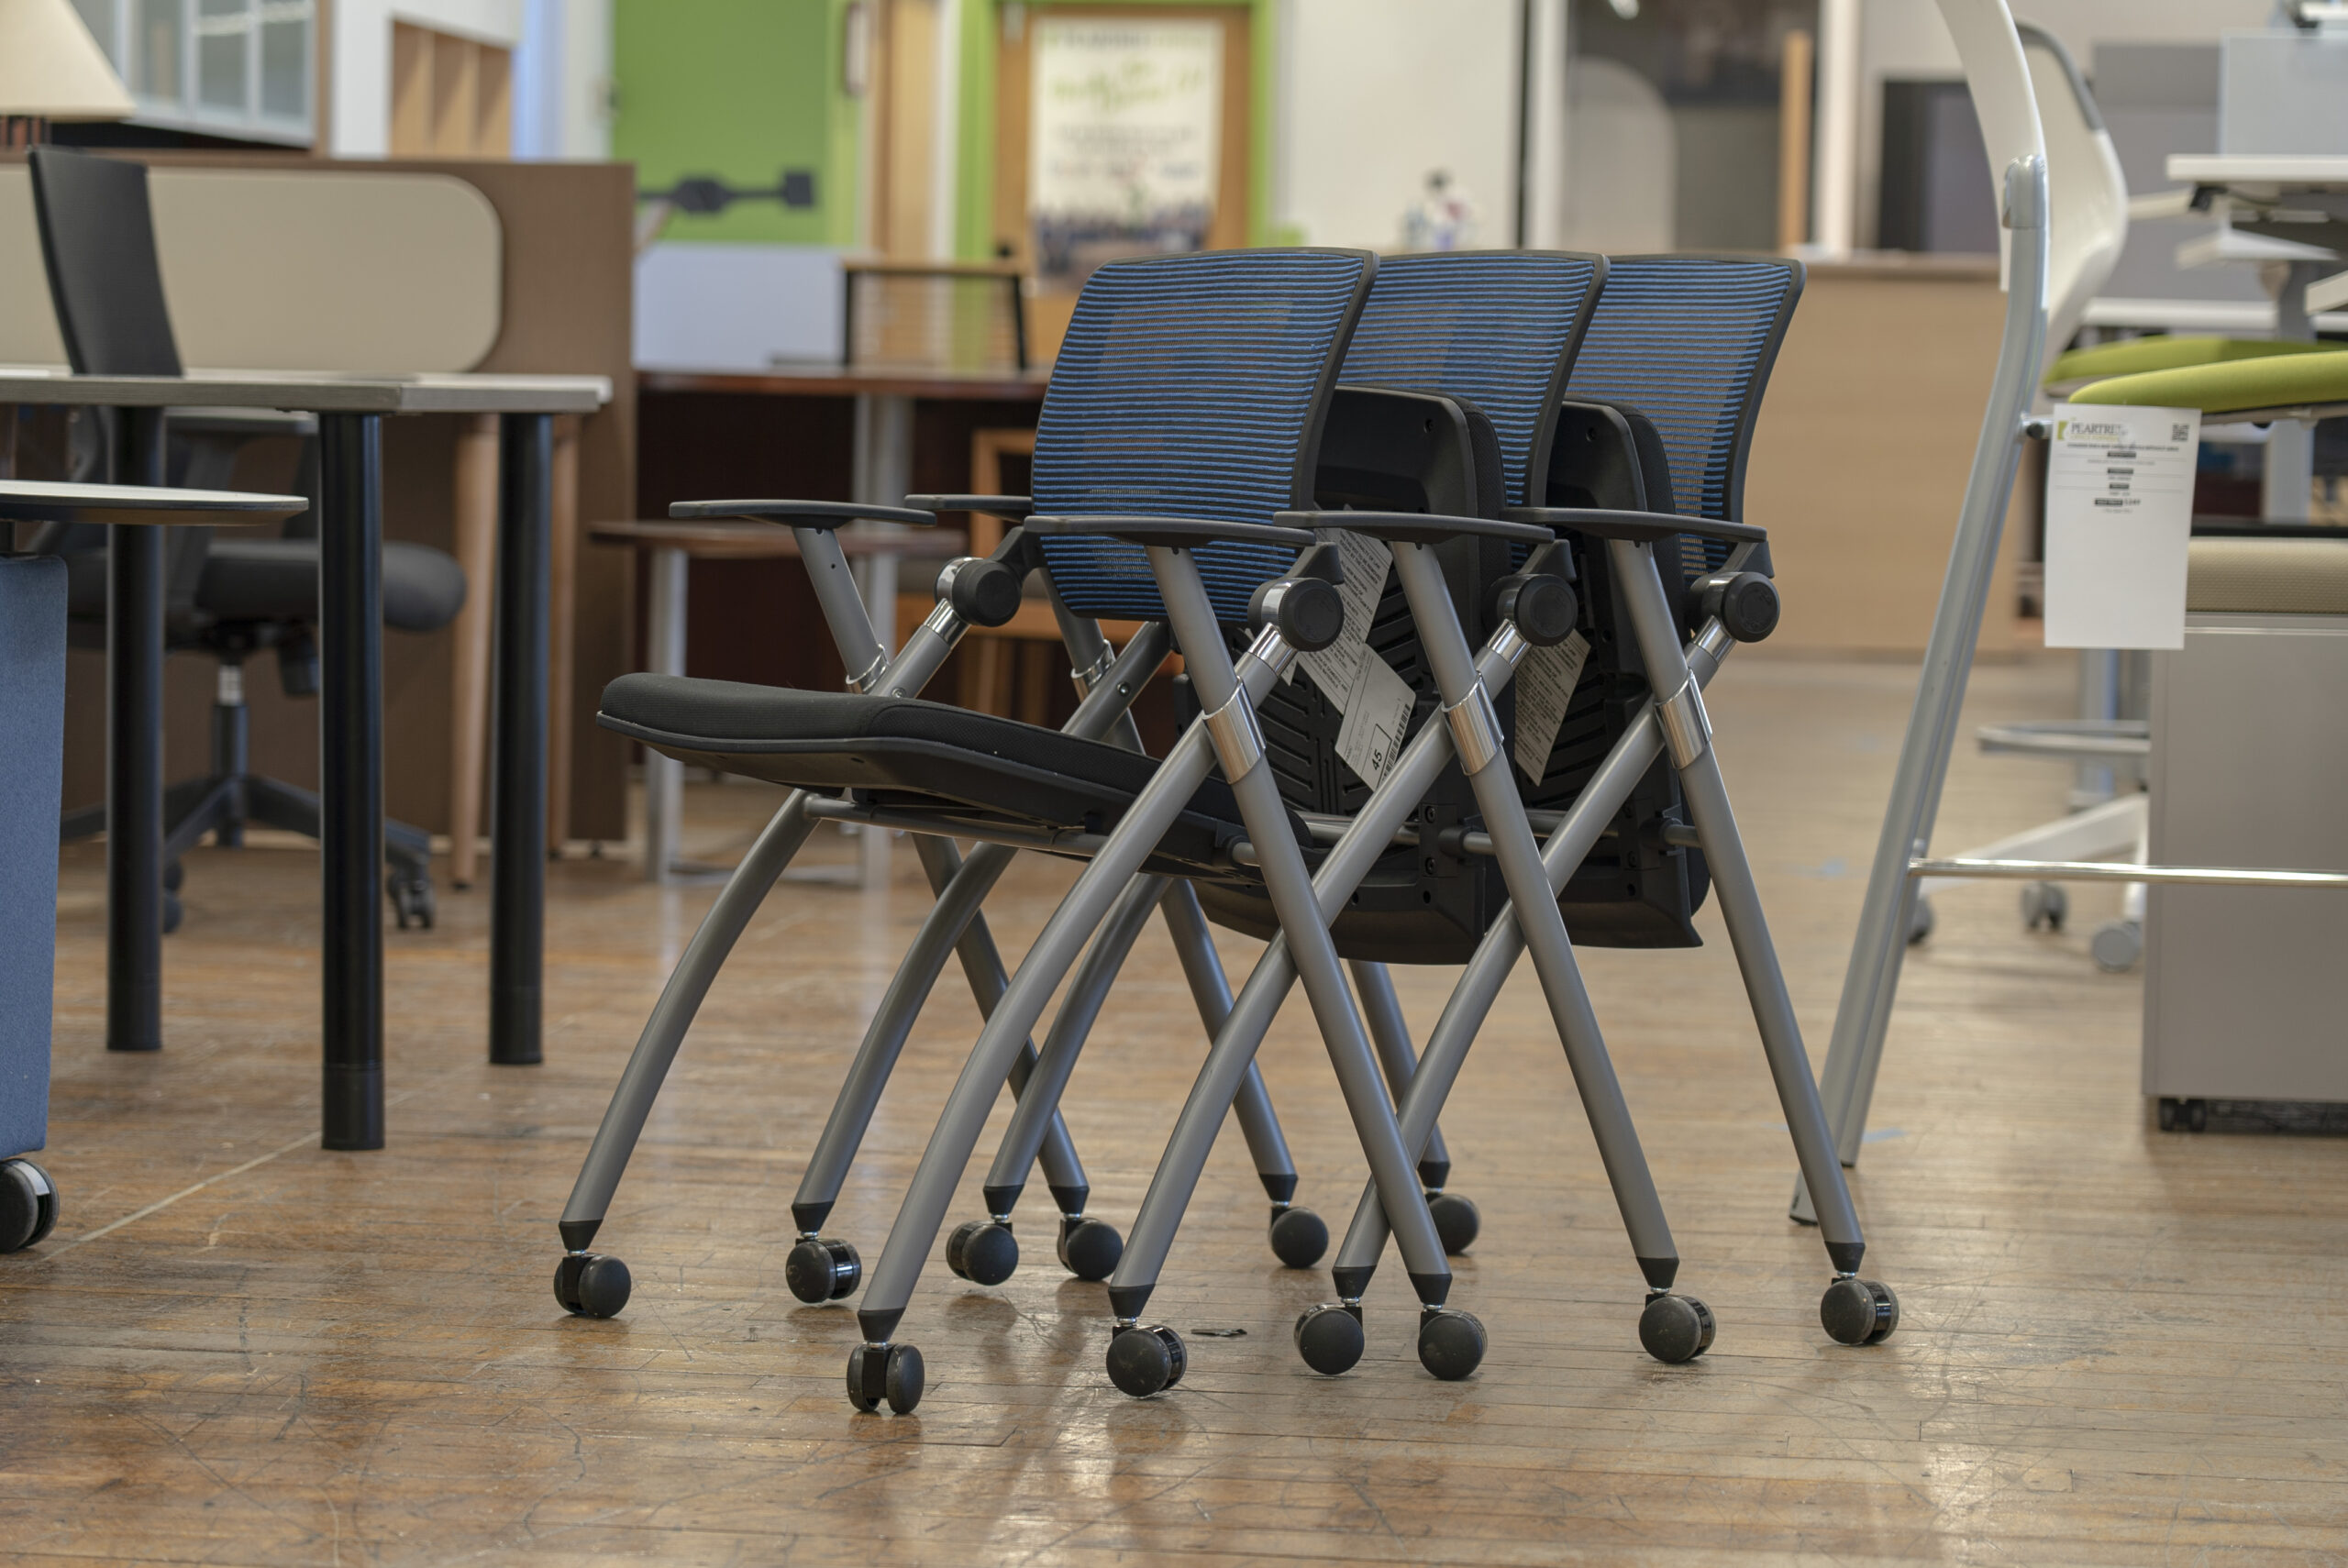 ais-stow-multipurpose-nesting-chairs